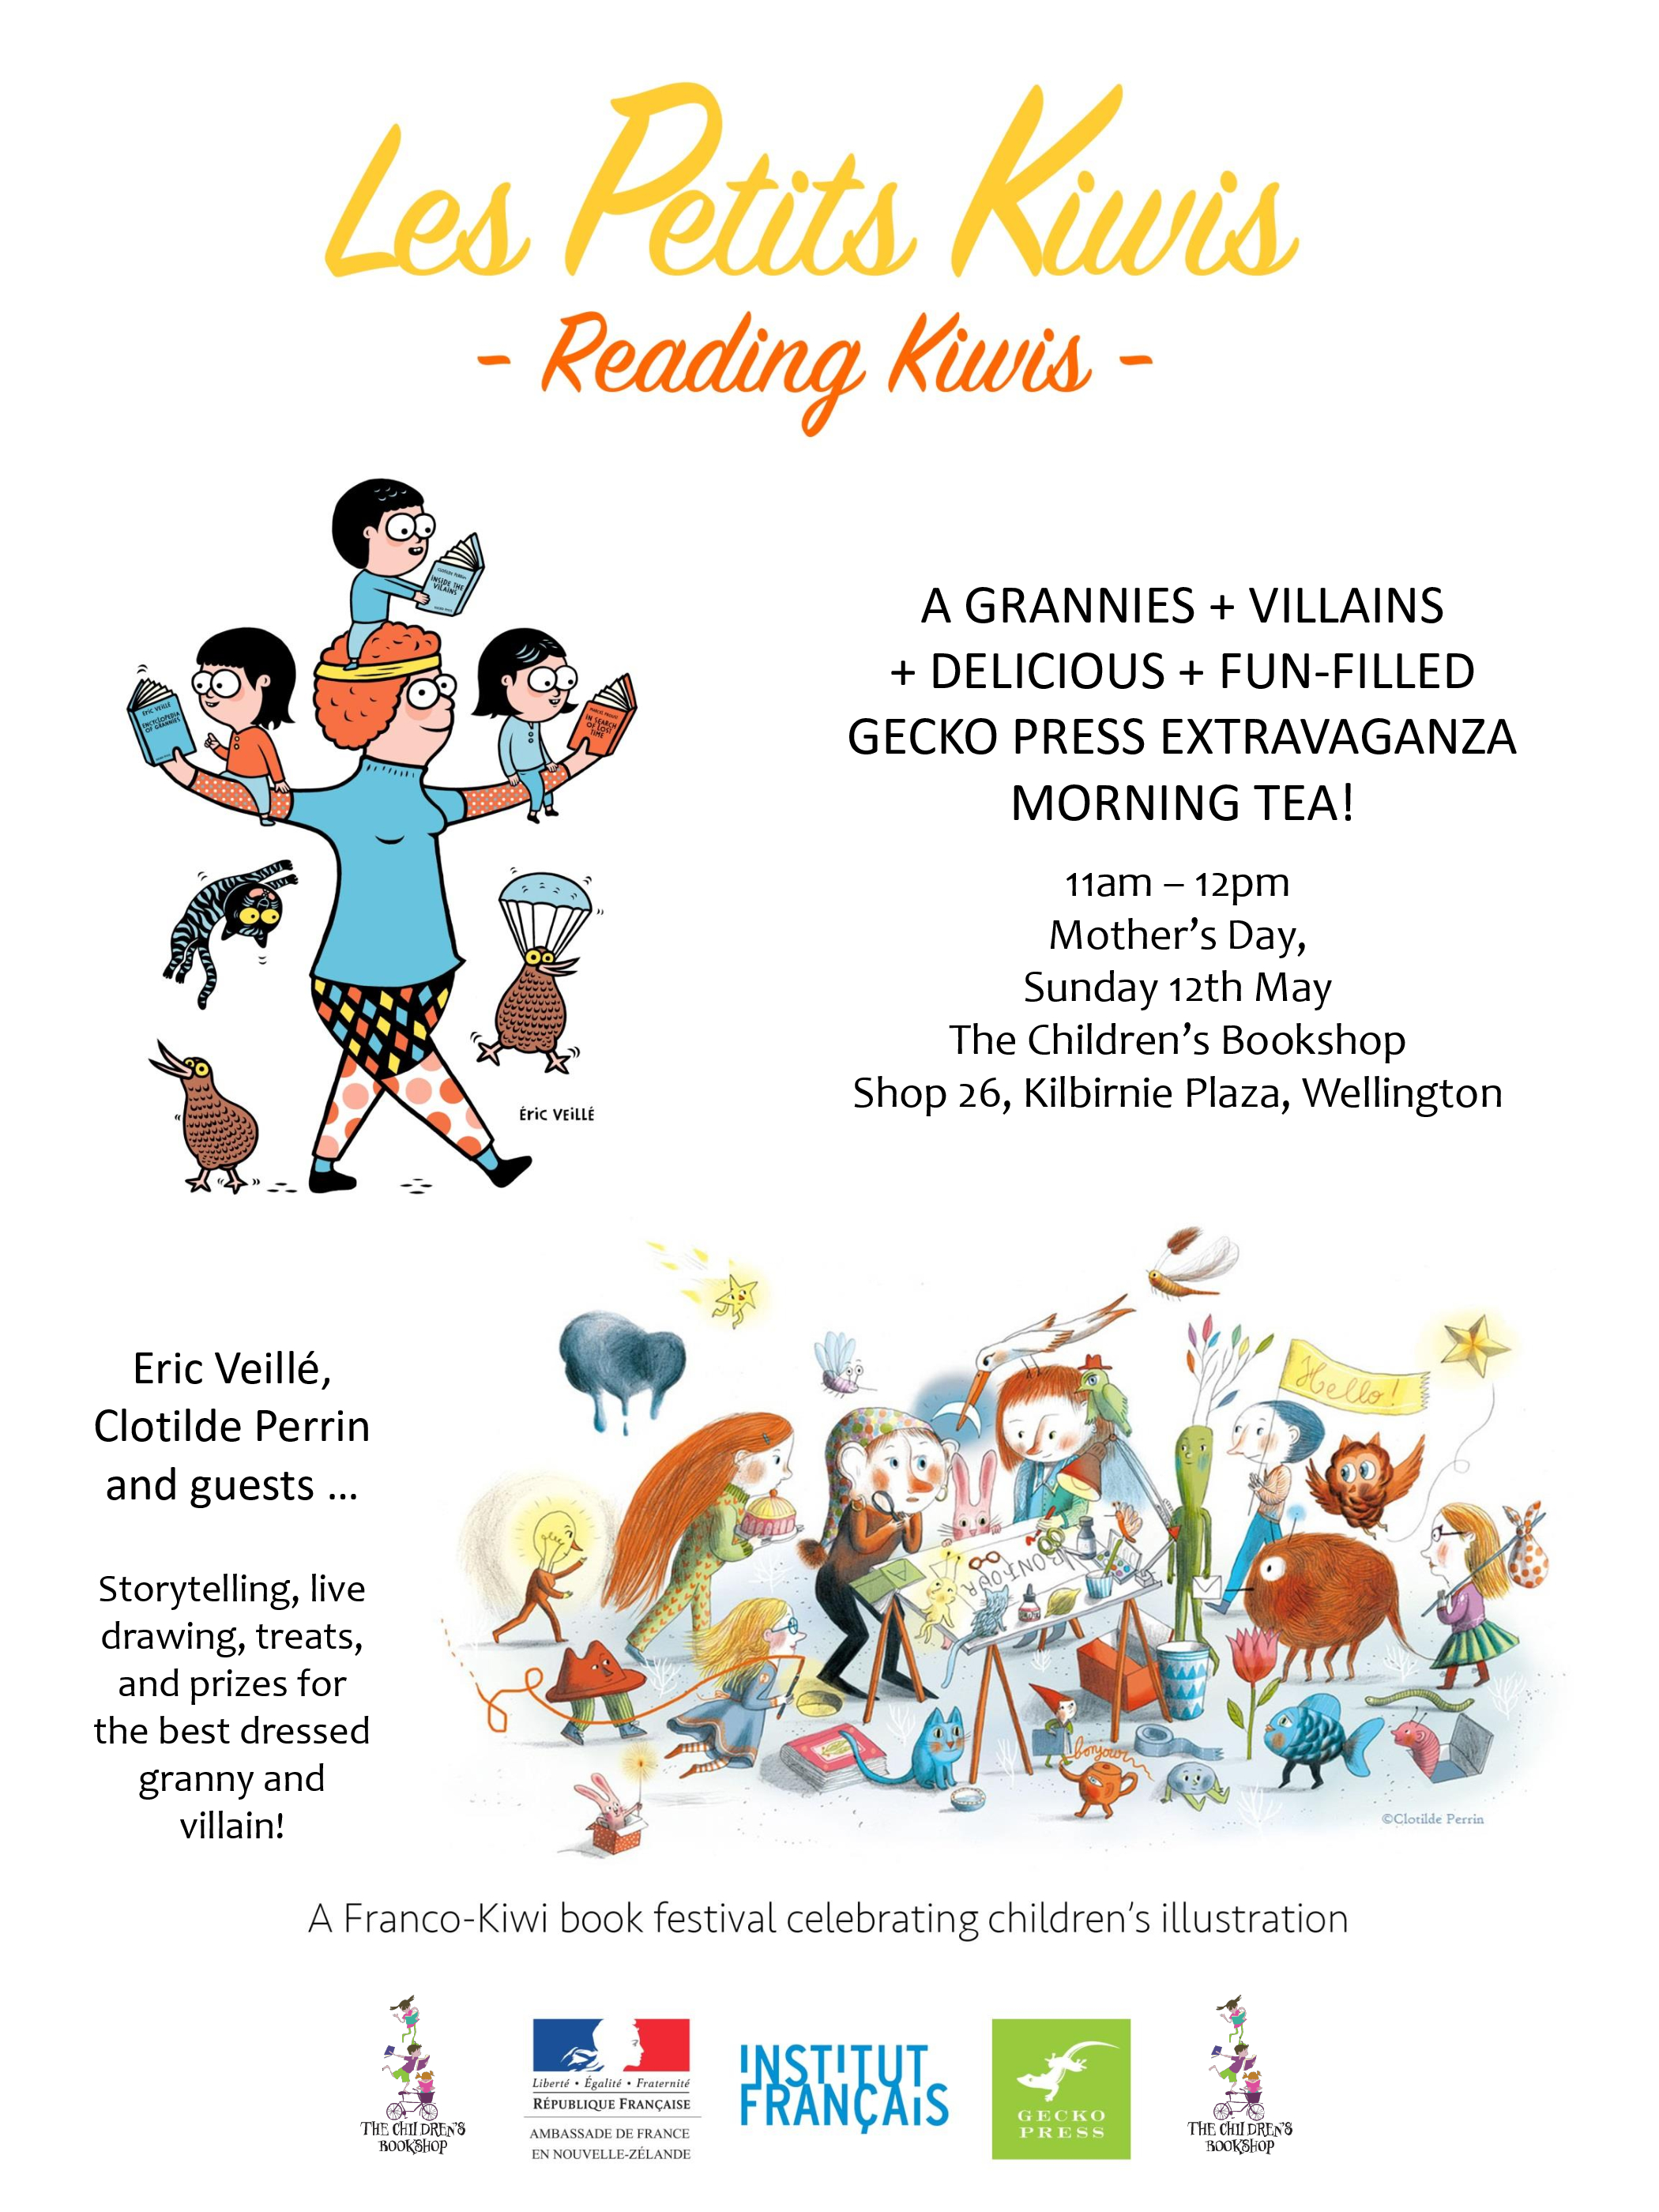 A Grannies + Villains Fun-filled Extravaganza Morning Tea